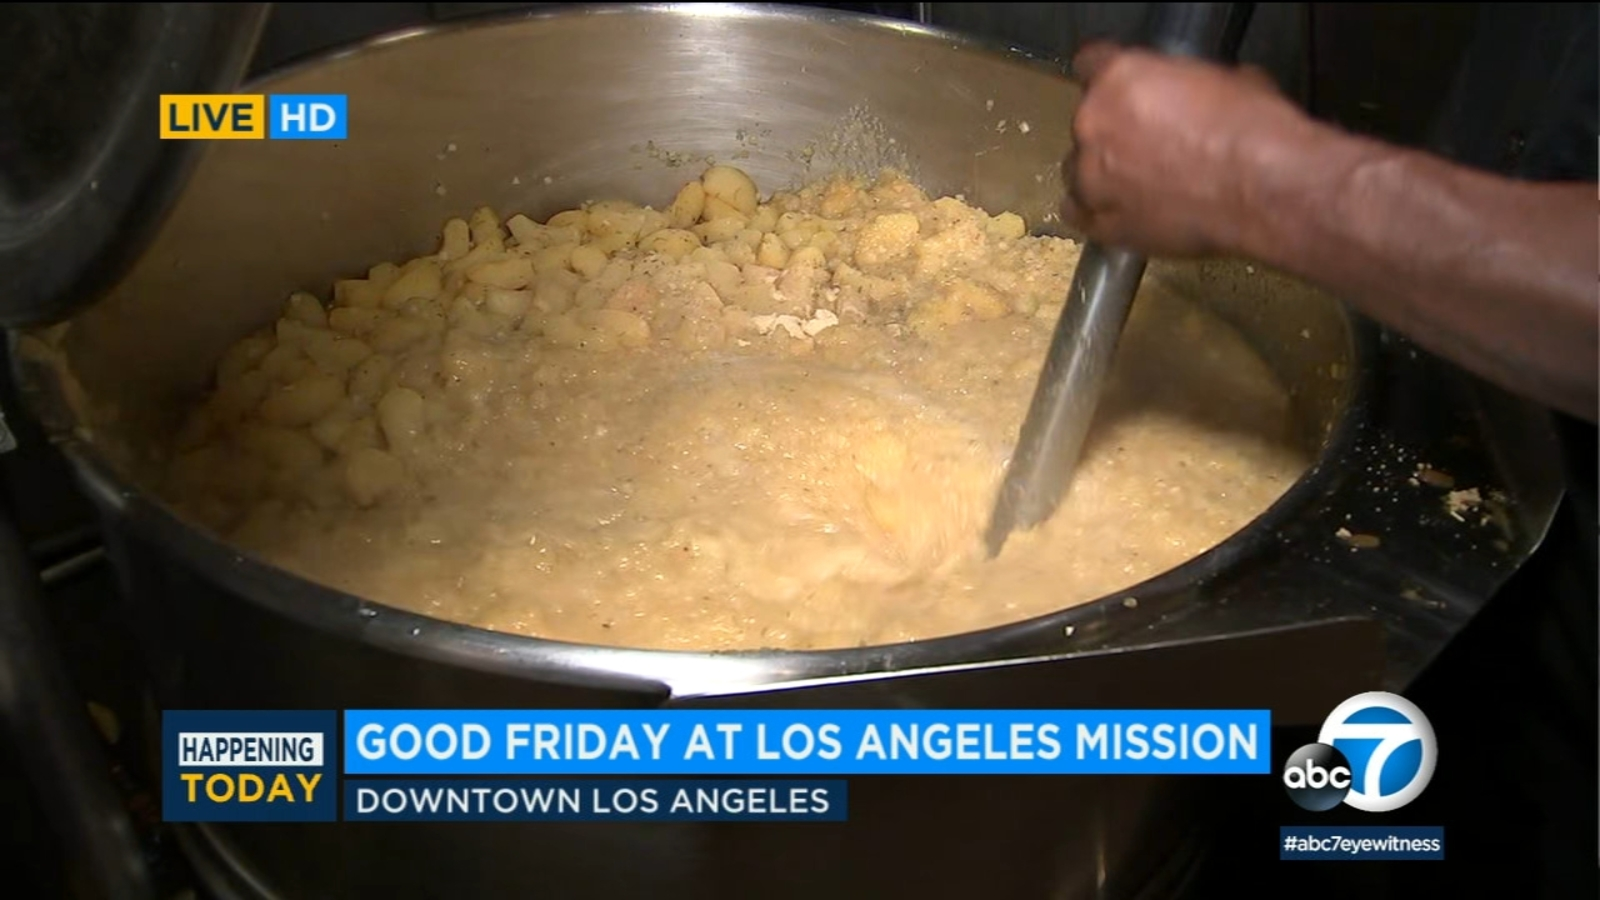 LA Mission serves sides of hope and love with Good Friday feast